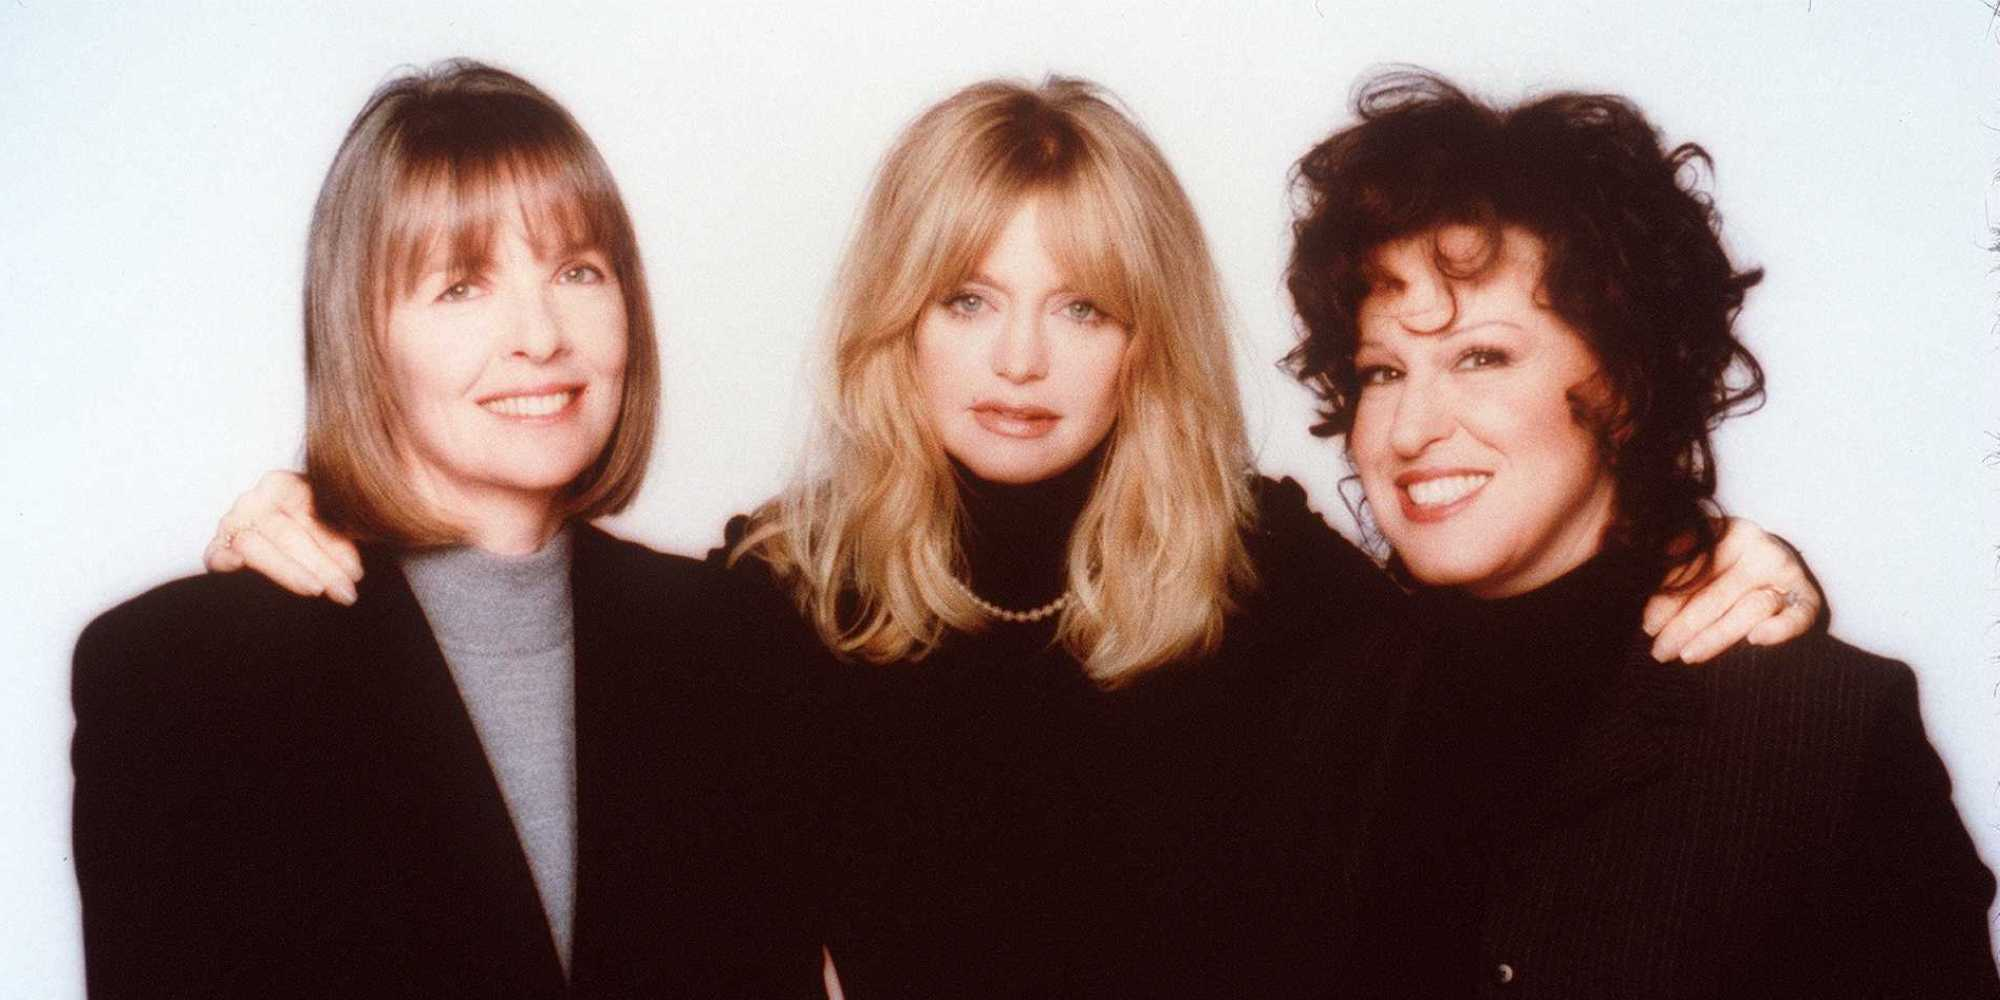 DIANE KEATON, GOLDIE HAWN, BETTE MIDLER STAR IN THE FIRST WIVES CLUB